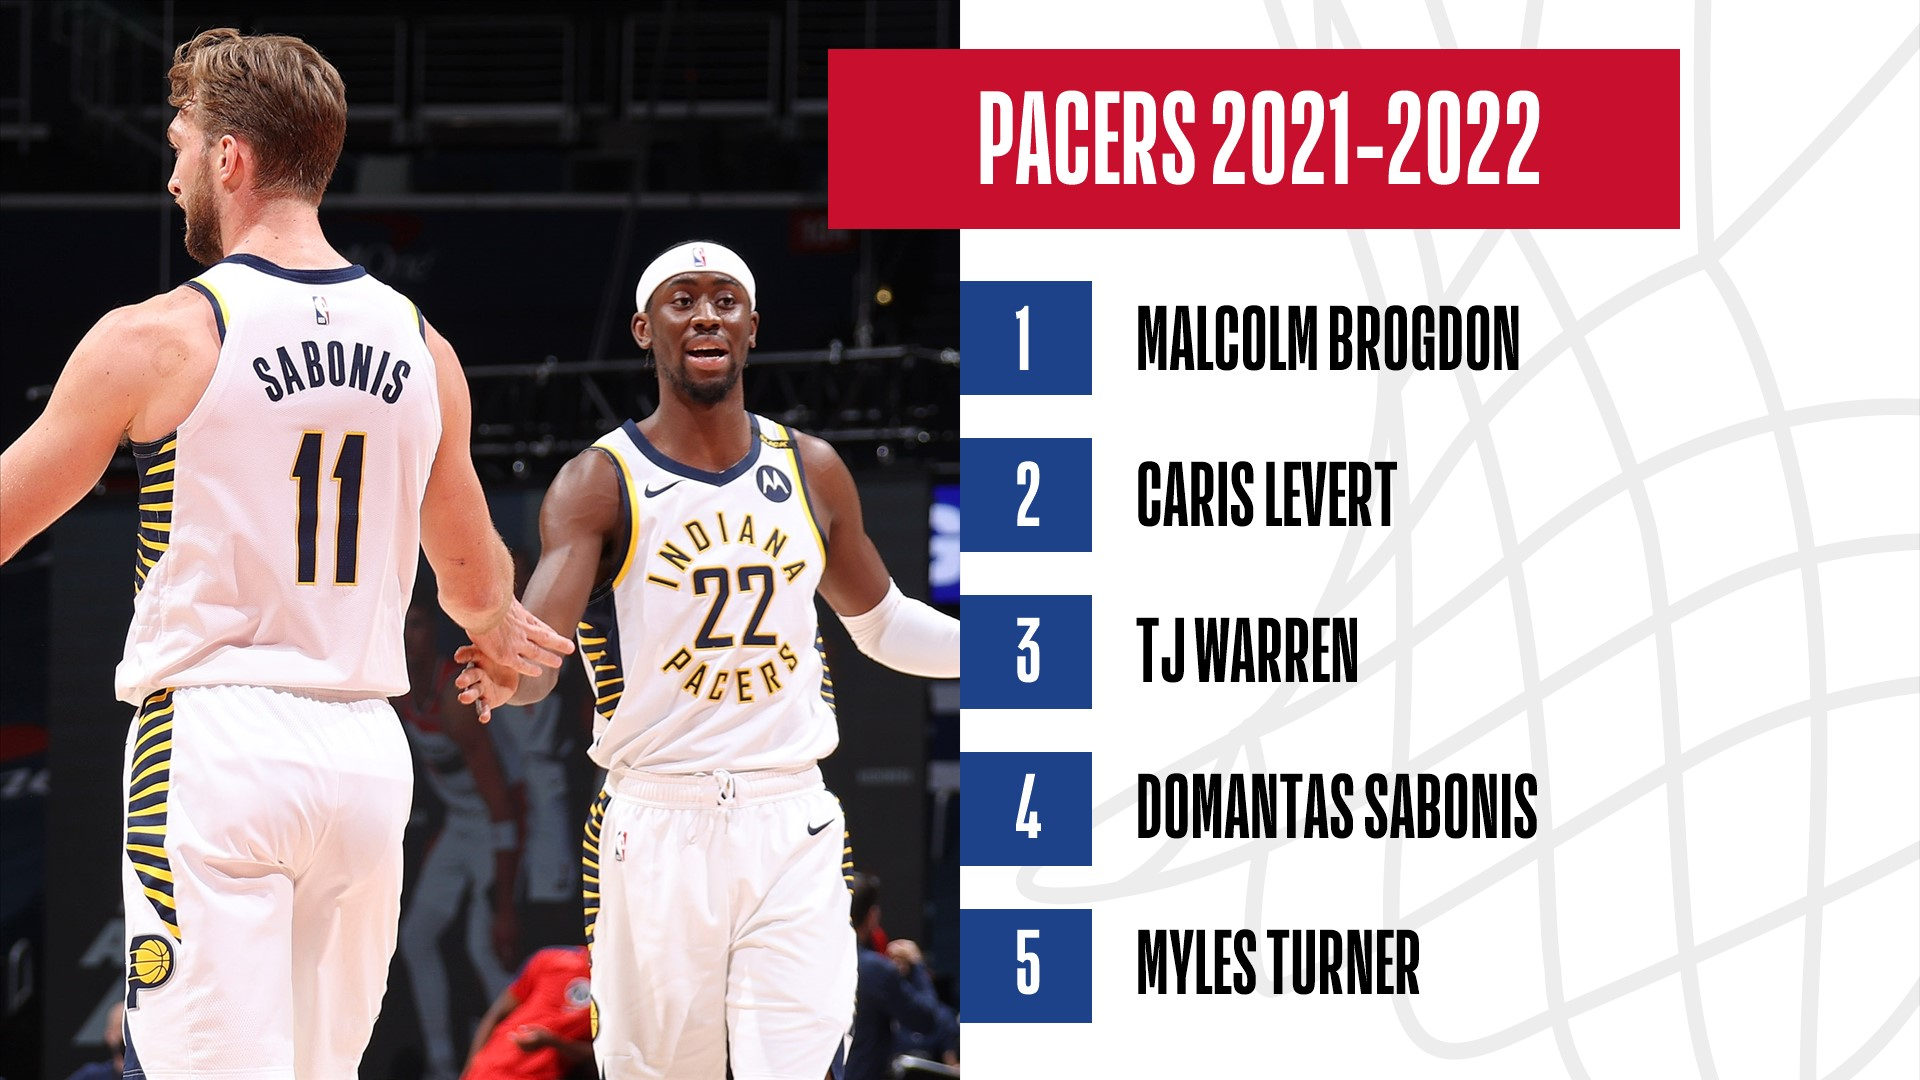 The Indiana Pacers outlook for the 2021-2022 NBA season after their movements in the market | NBA.com Spain | The Official Site of the NBA